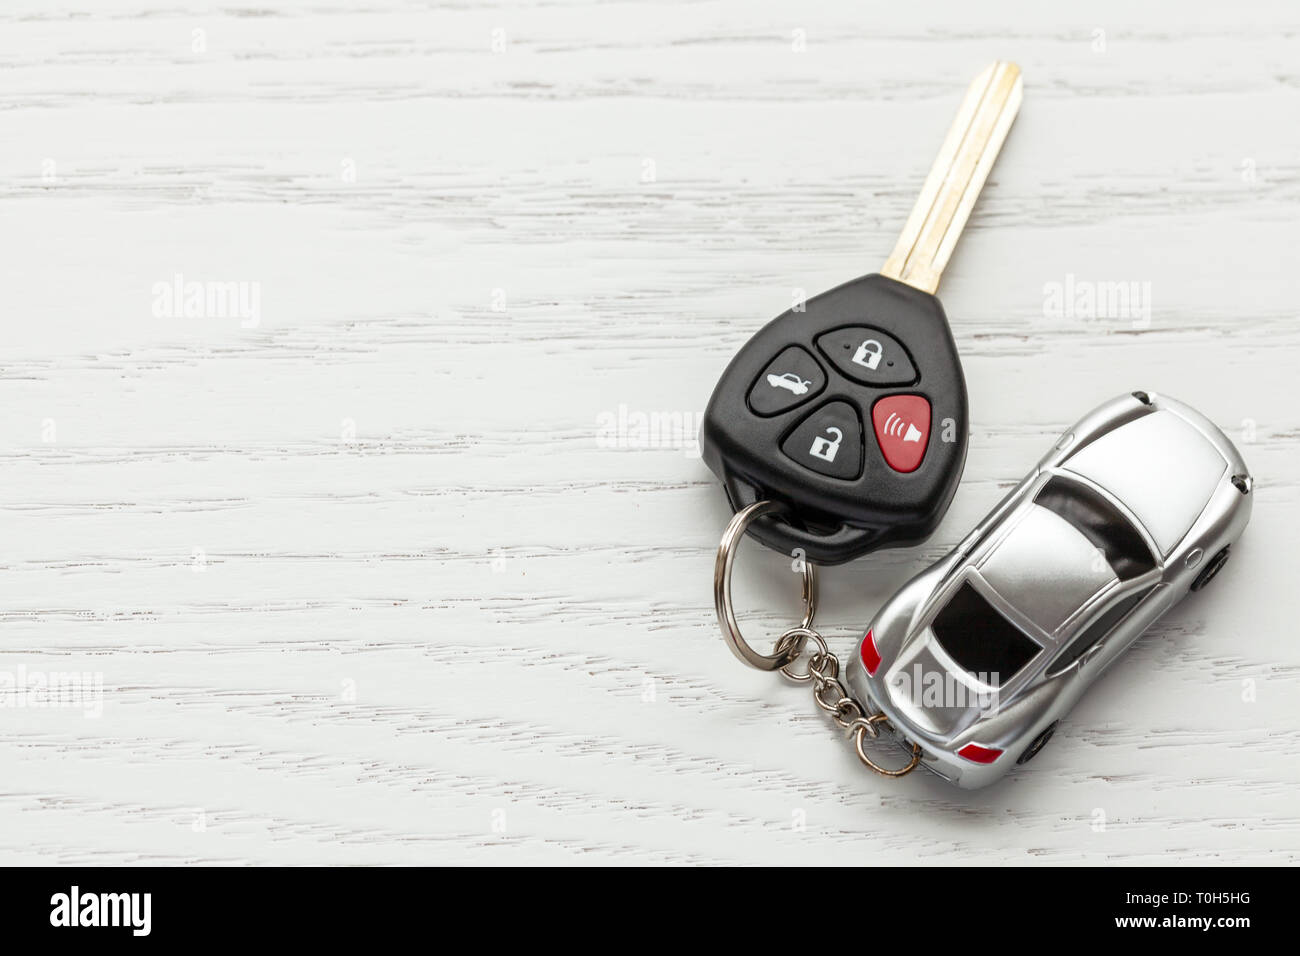 Car keys with remote control security and car key chain on